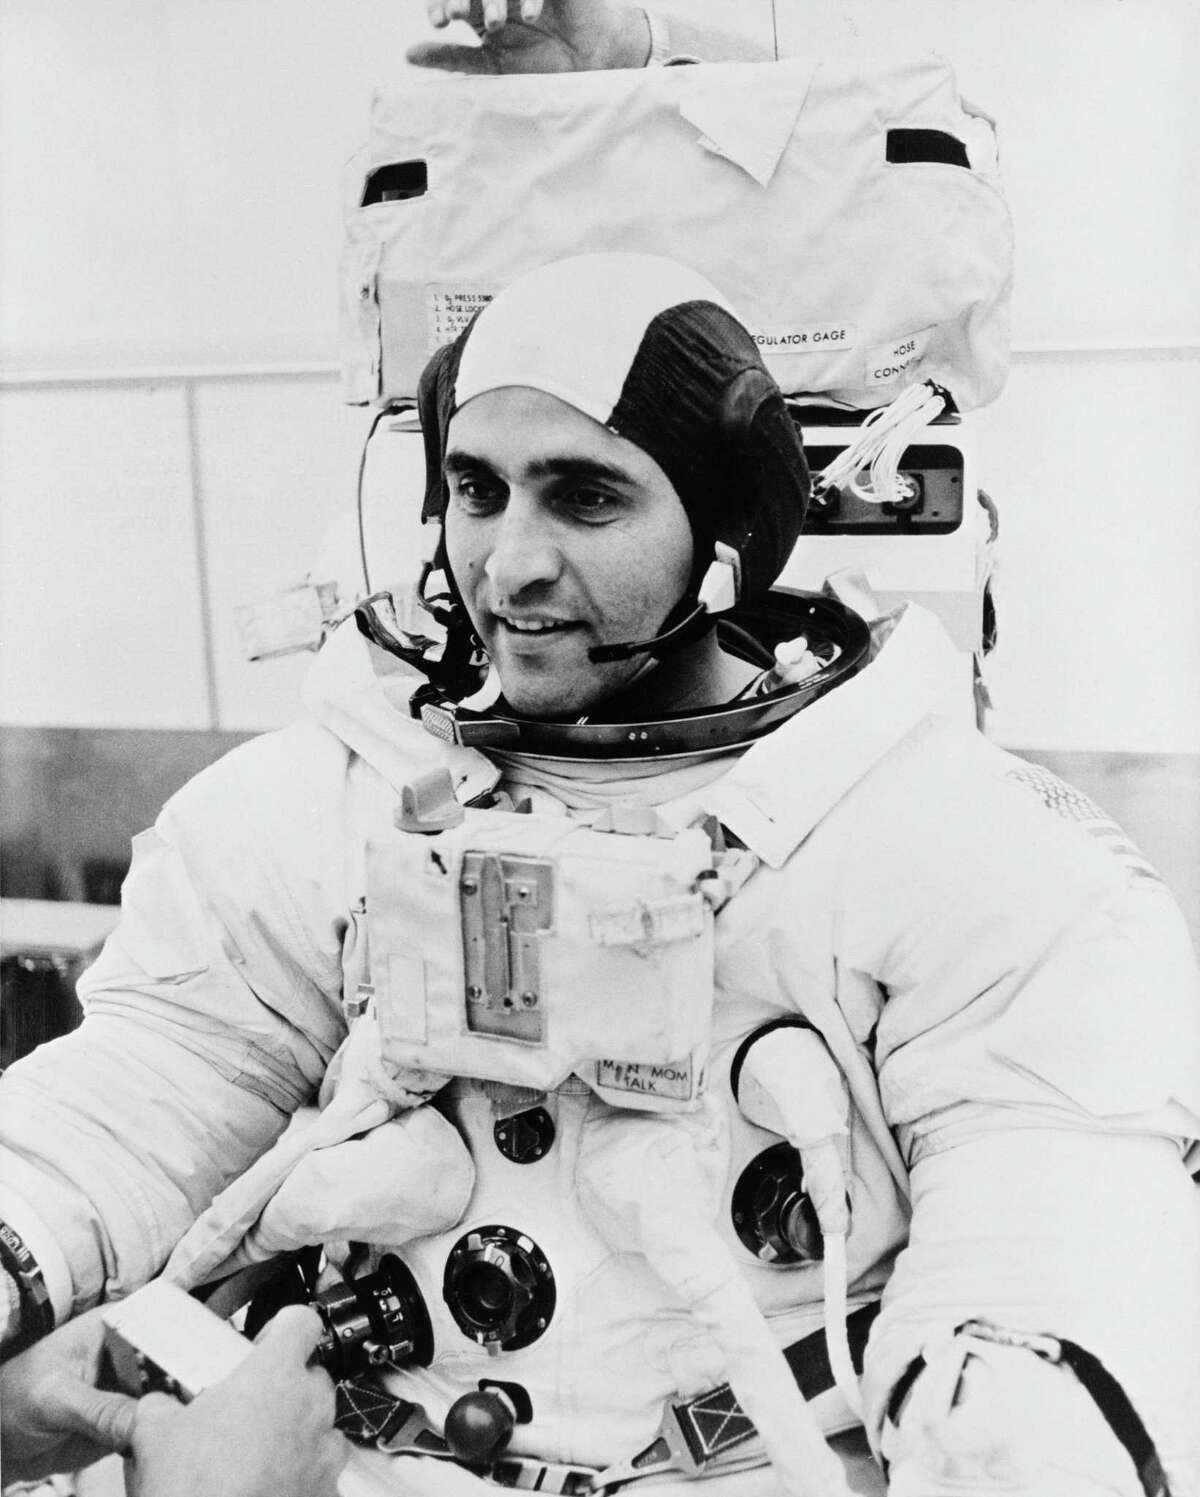 """Scientist-astronaut Harrison H. """"Jack"""" Schmitt, lunar module pilot of the Apollo 17 lunar landing mission, is shown in this Sept. 8, 1972 photo suited up in preparation for extravehicular simulations at the Kennedy Space Center in Florida."""